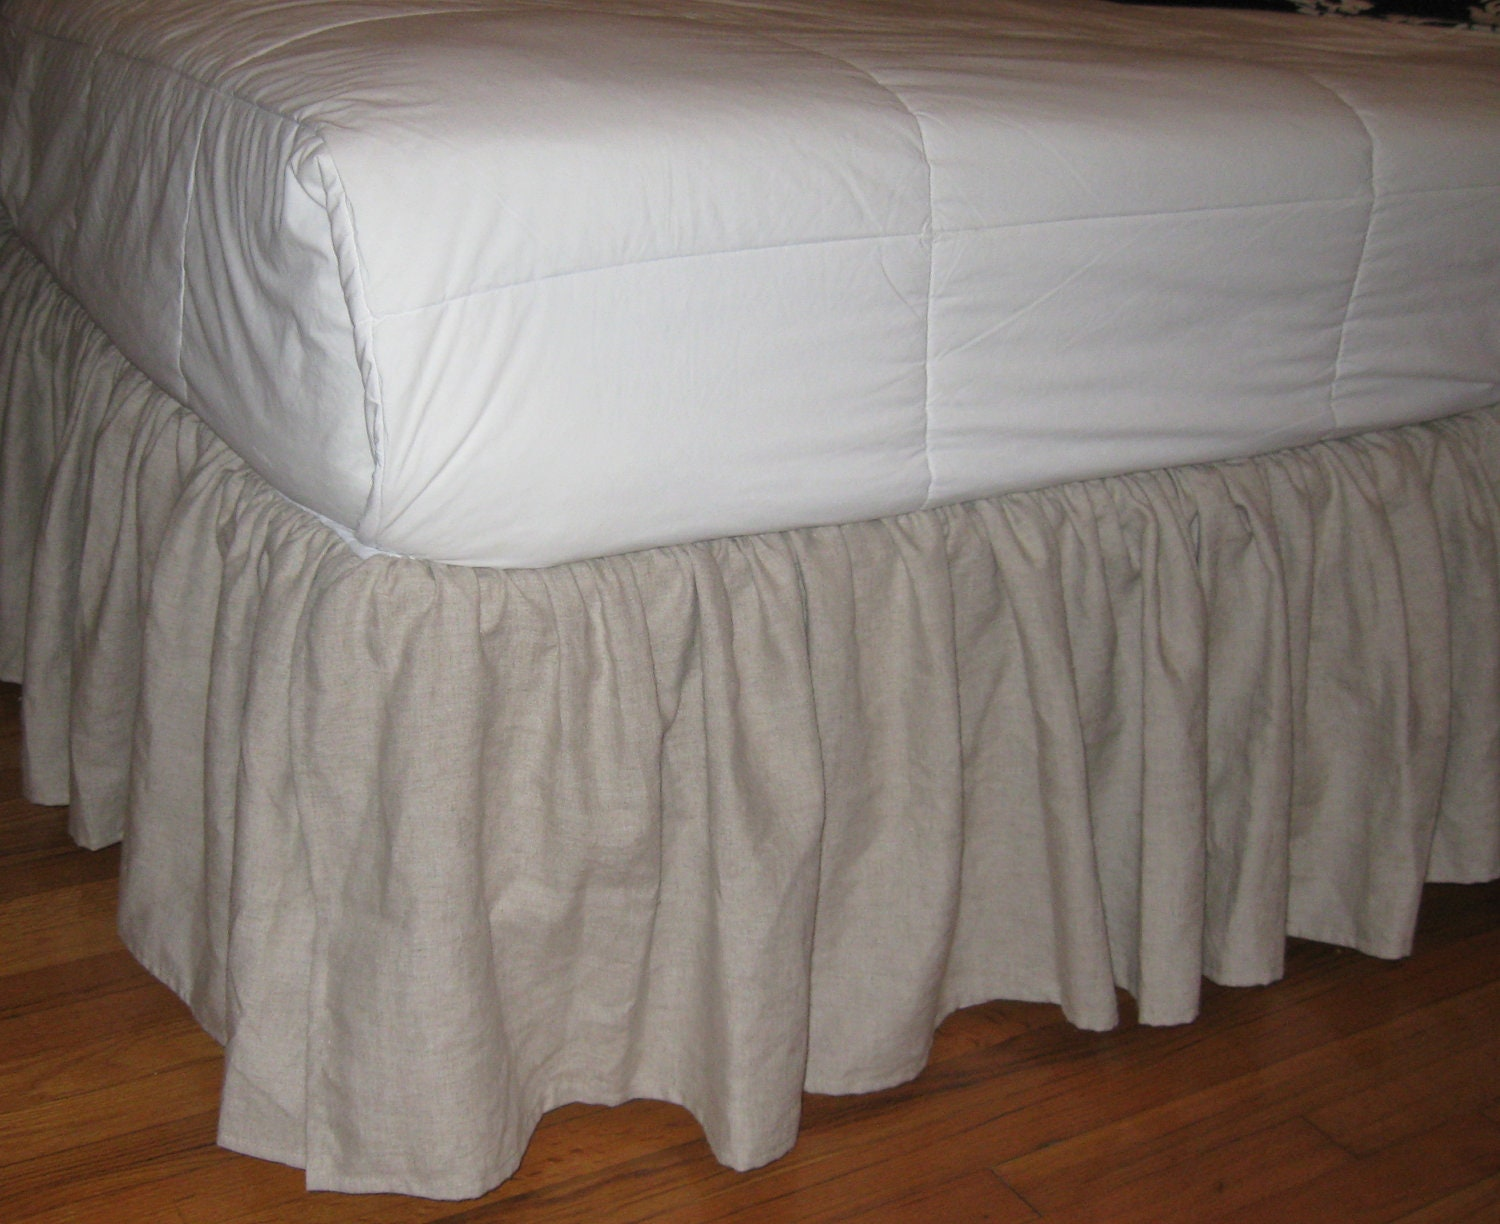 Bed skirts are also included with many of the bedding sets found online at specialtysports.ga At specialtysports.ga you will find a large assortment of bed skirts that you can mix and match to create a unique look for your bed, When searching for a new bed skirt, just look for one that complements the bedding decor in your bedroom.